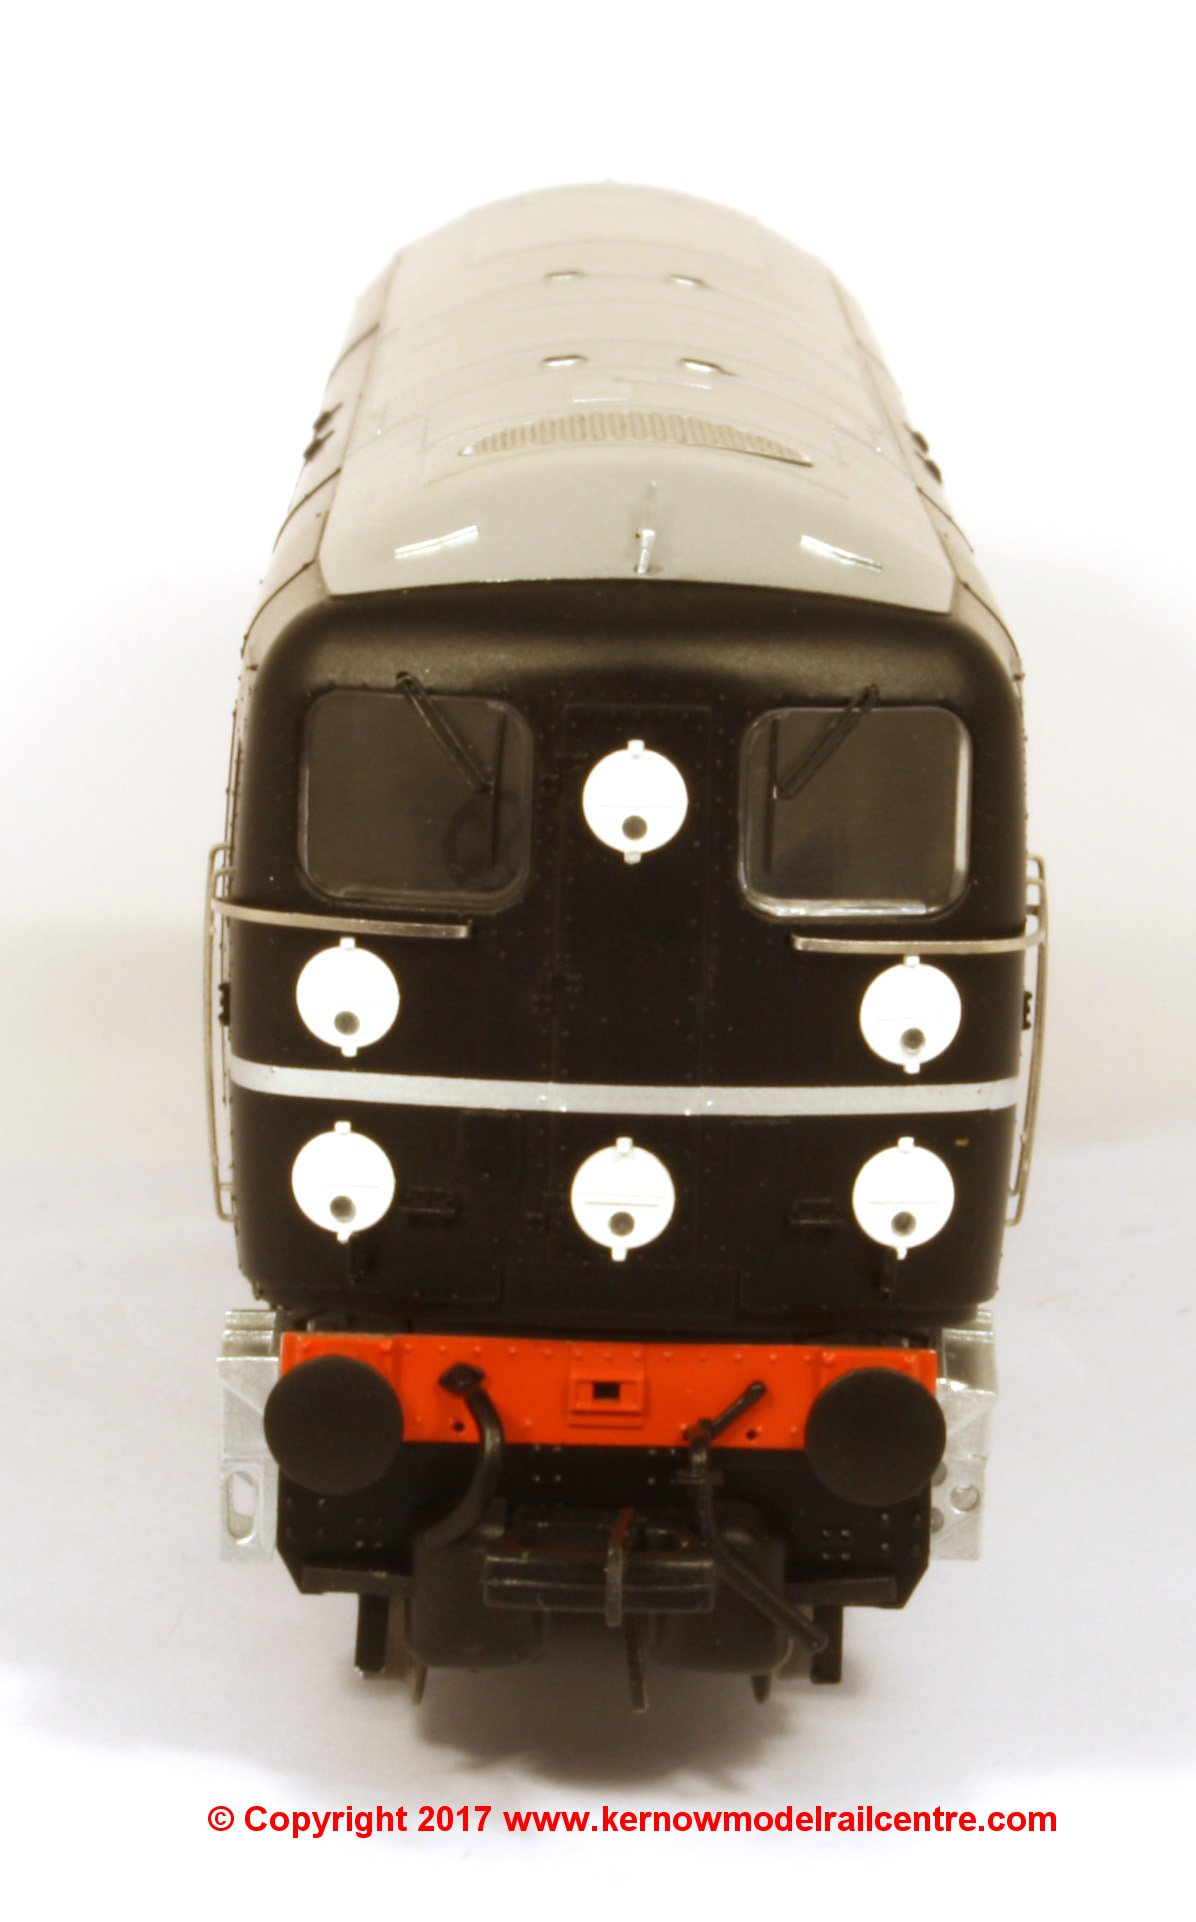 K2701 Bulleid 1-Co-Co-1 Diesel Locomotive number 10201 in BR Black livery with early emblem